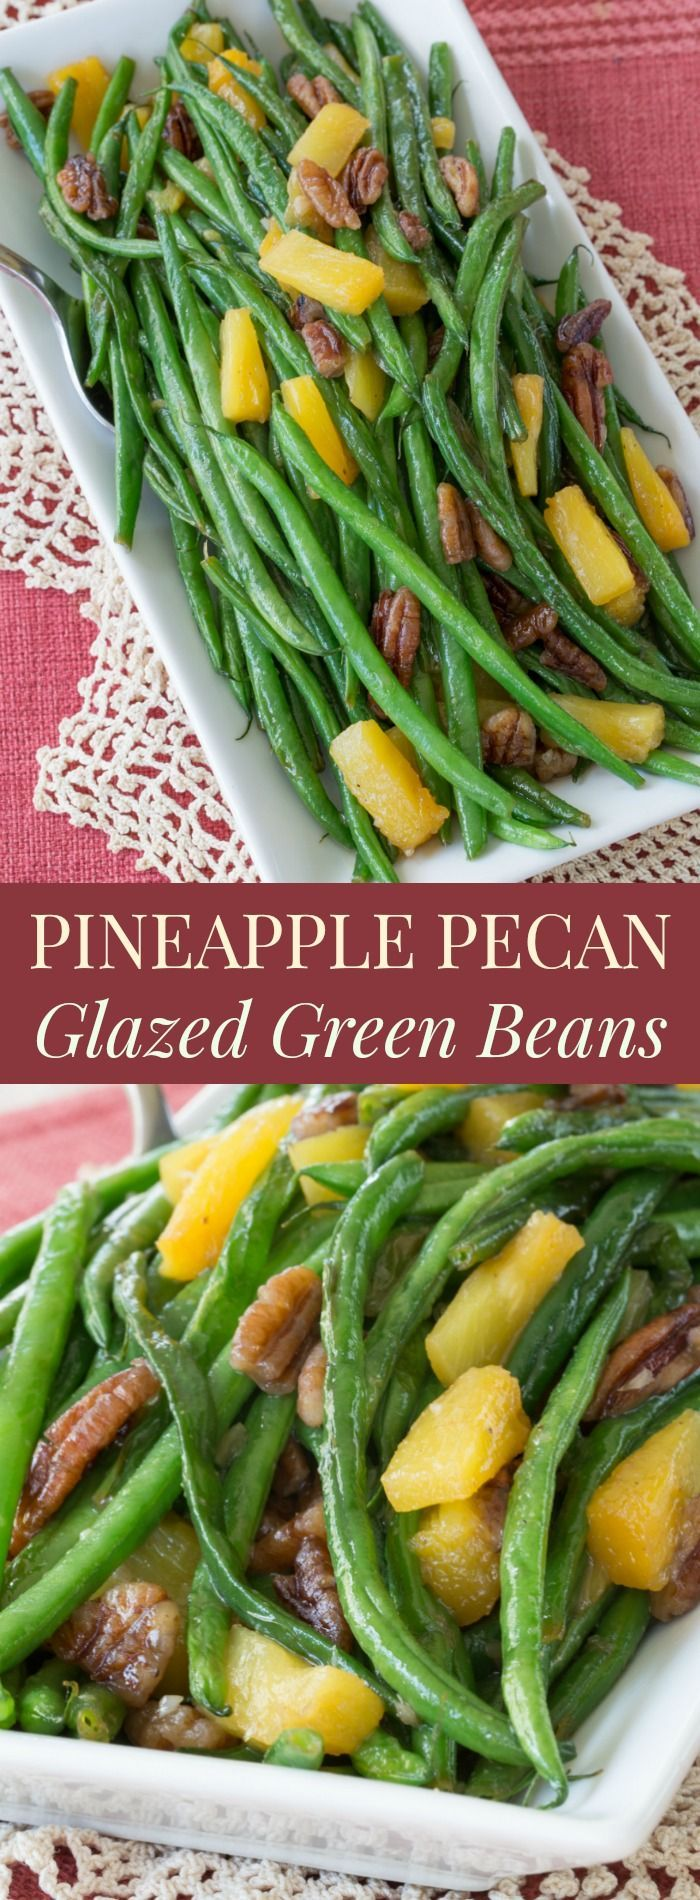 Pineapple Pecan Glazed Green Beans - easy holiday side dish for Thanksgiving or Christmas. Gluten free and vegan